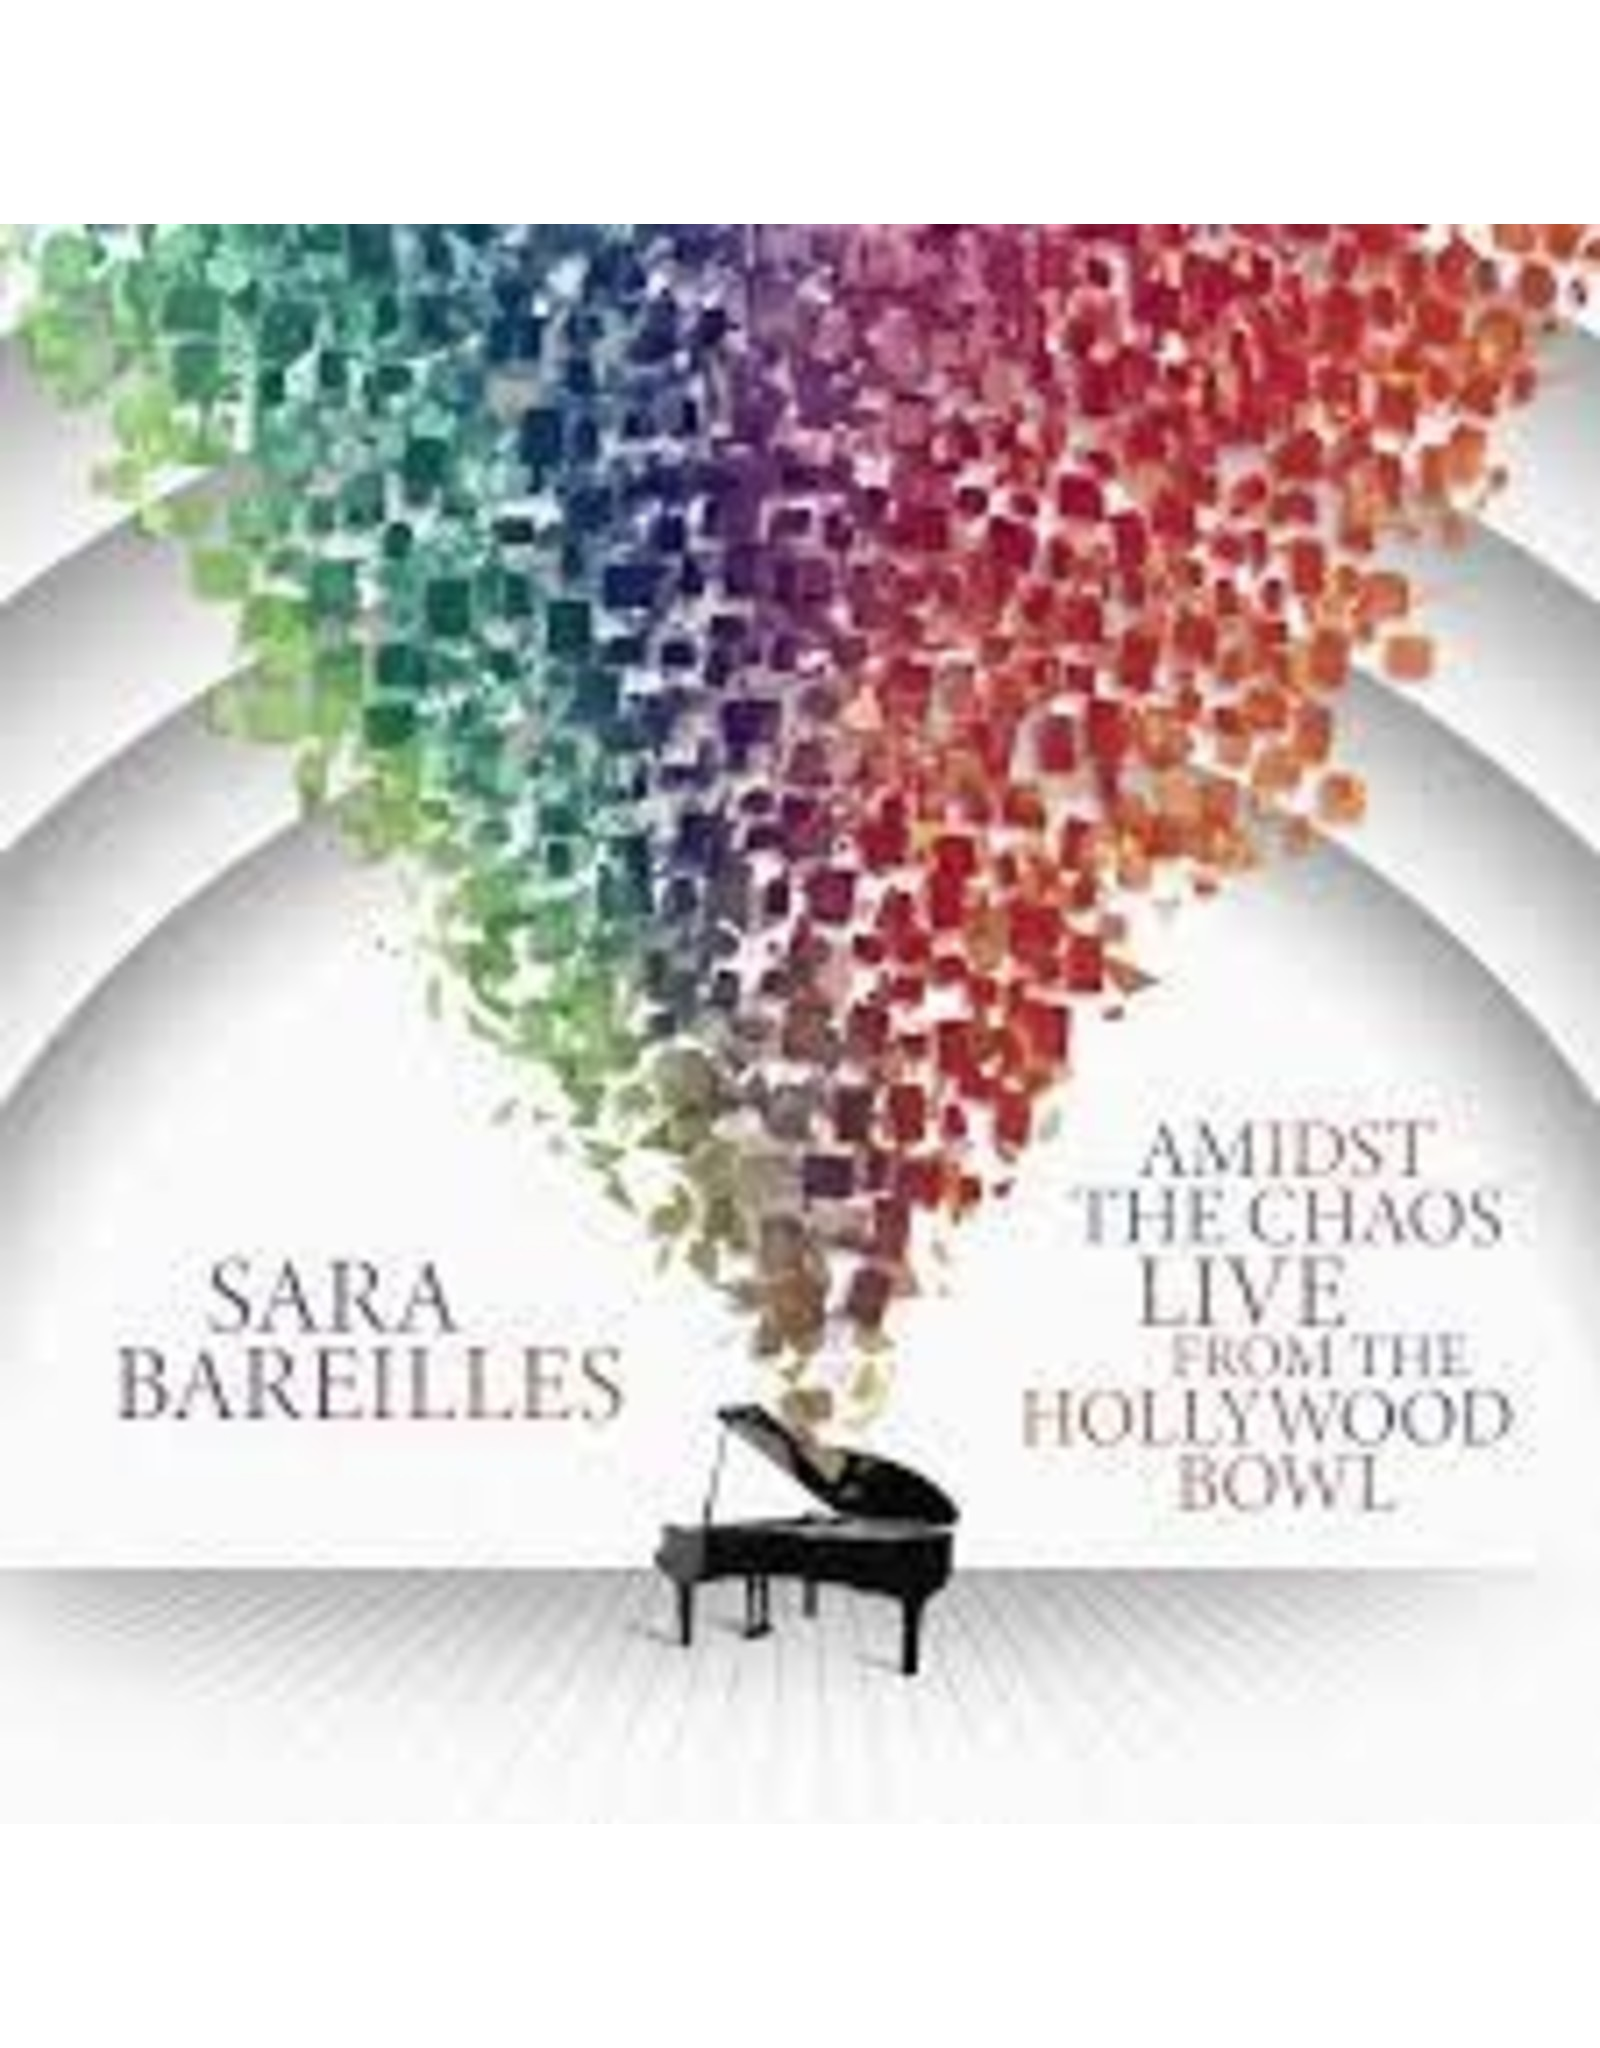 Bareilles, Sara - Amidst The Chaos Live From Hollywood Bowl